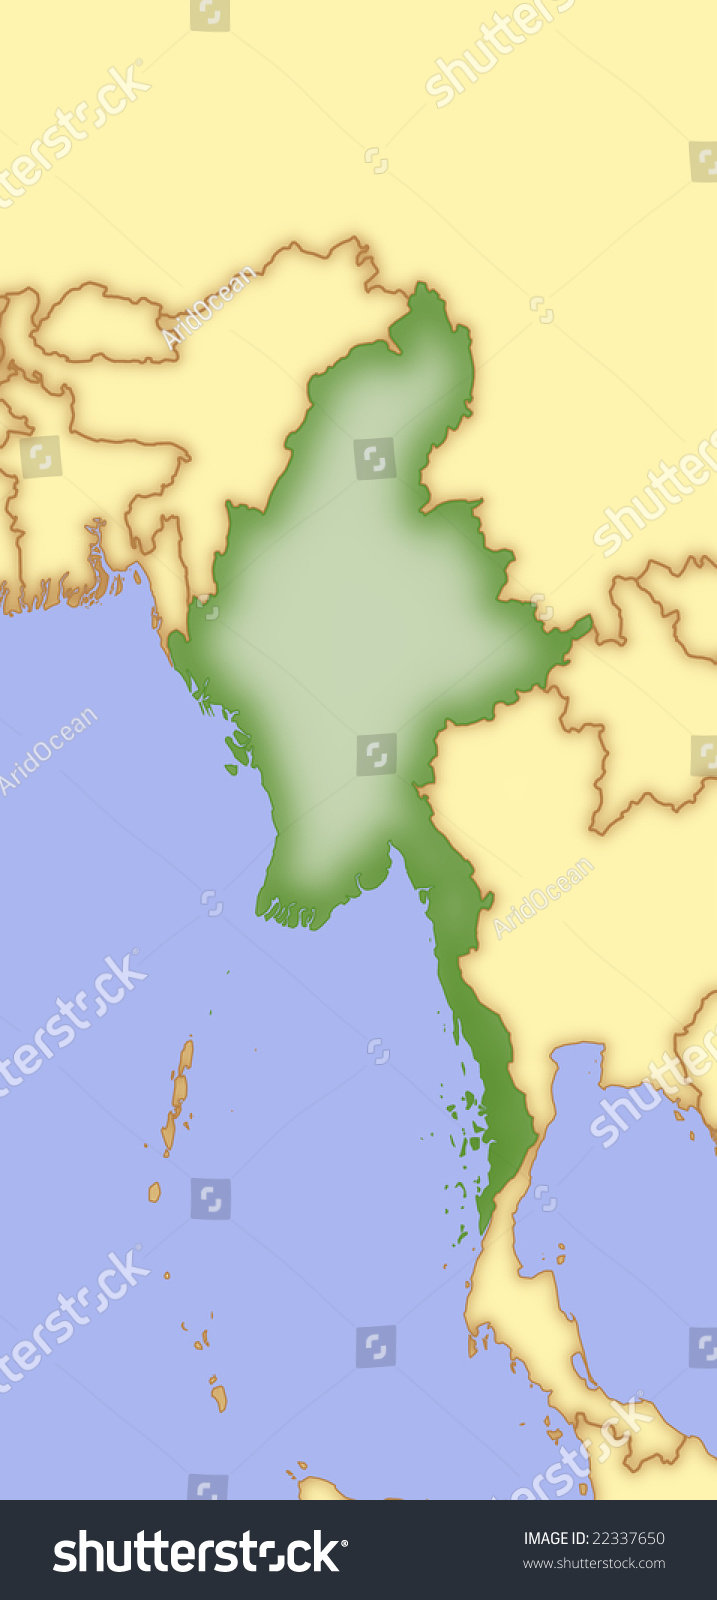 map of burma and surrounding countries Map Burma Borders Surrounding Countries Stock Illustration 22337650 map of burma and surrounding countries